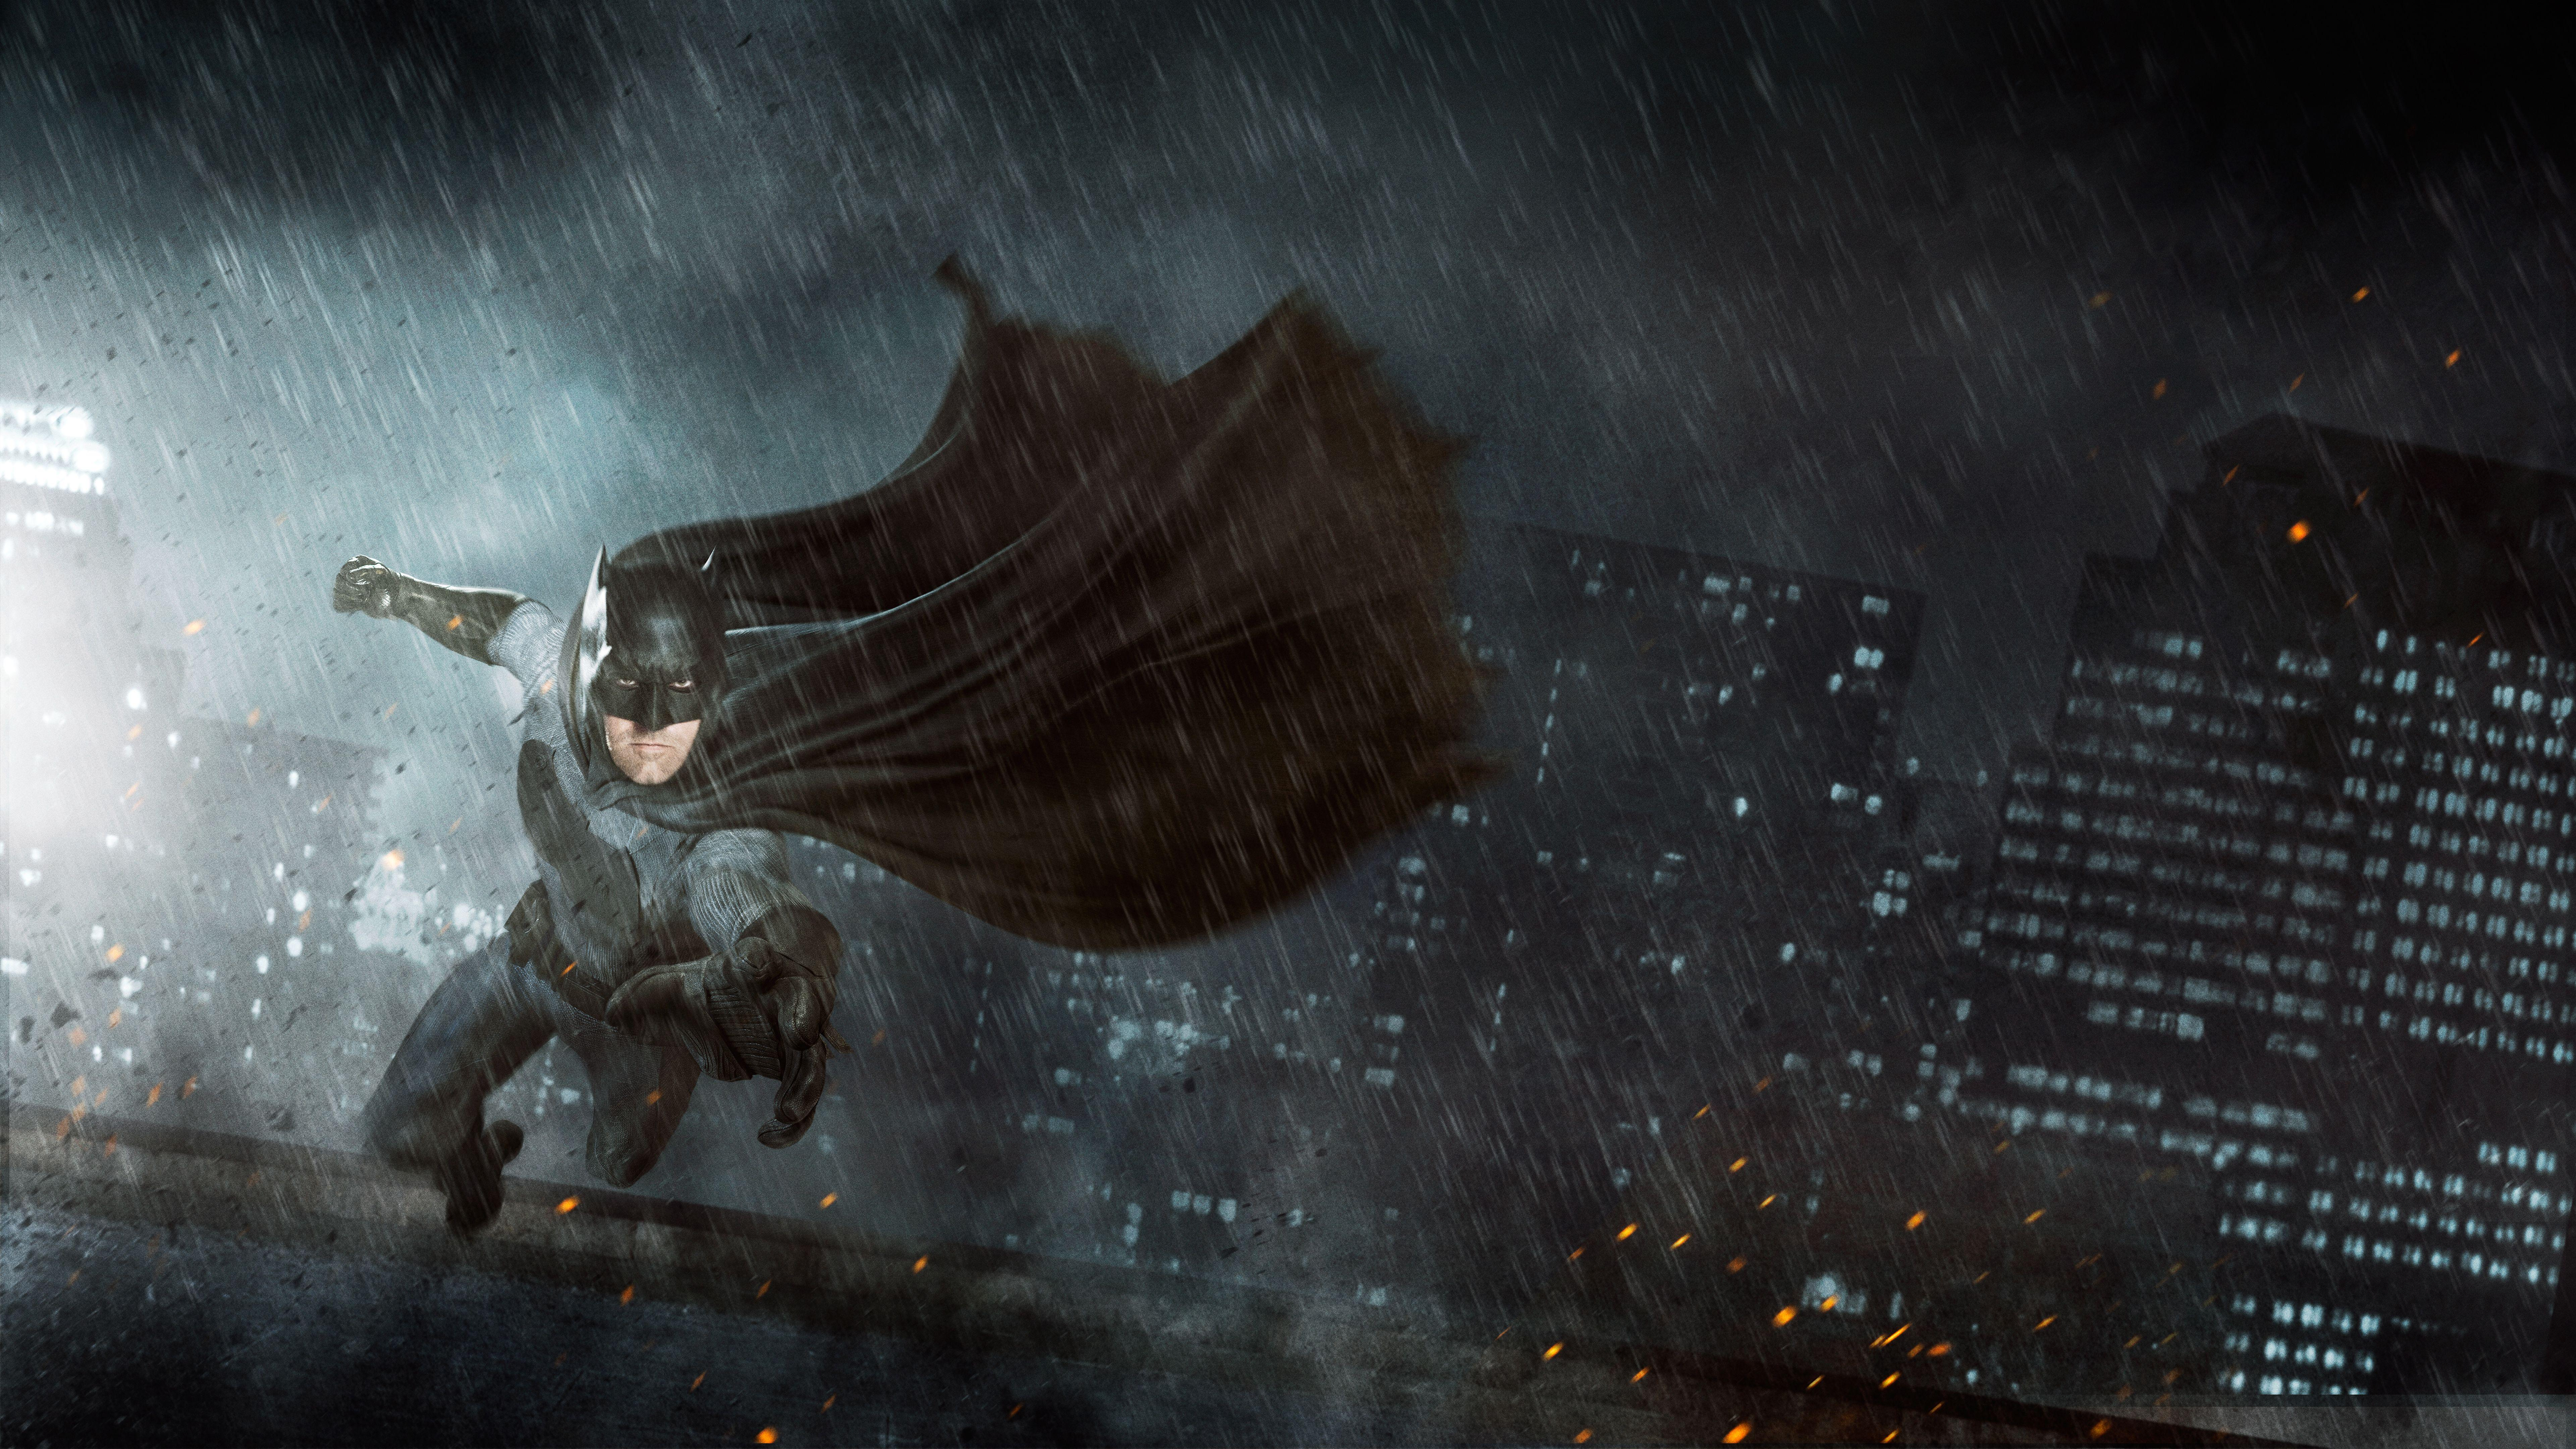 Wallpapers The Batman, Ben Affleck, Concept art, 4K, 8K, Movies,